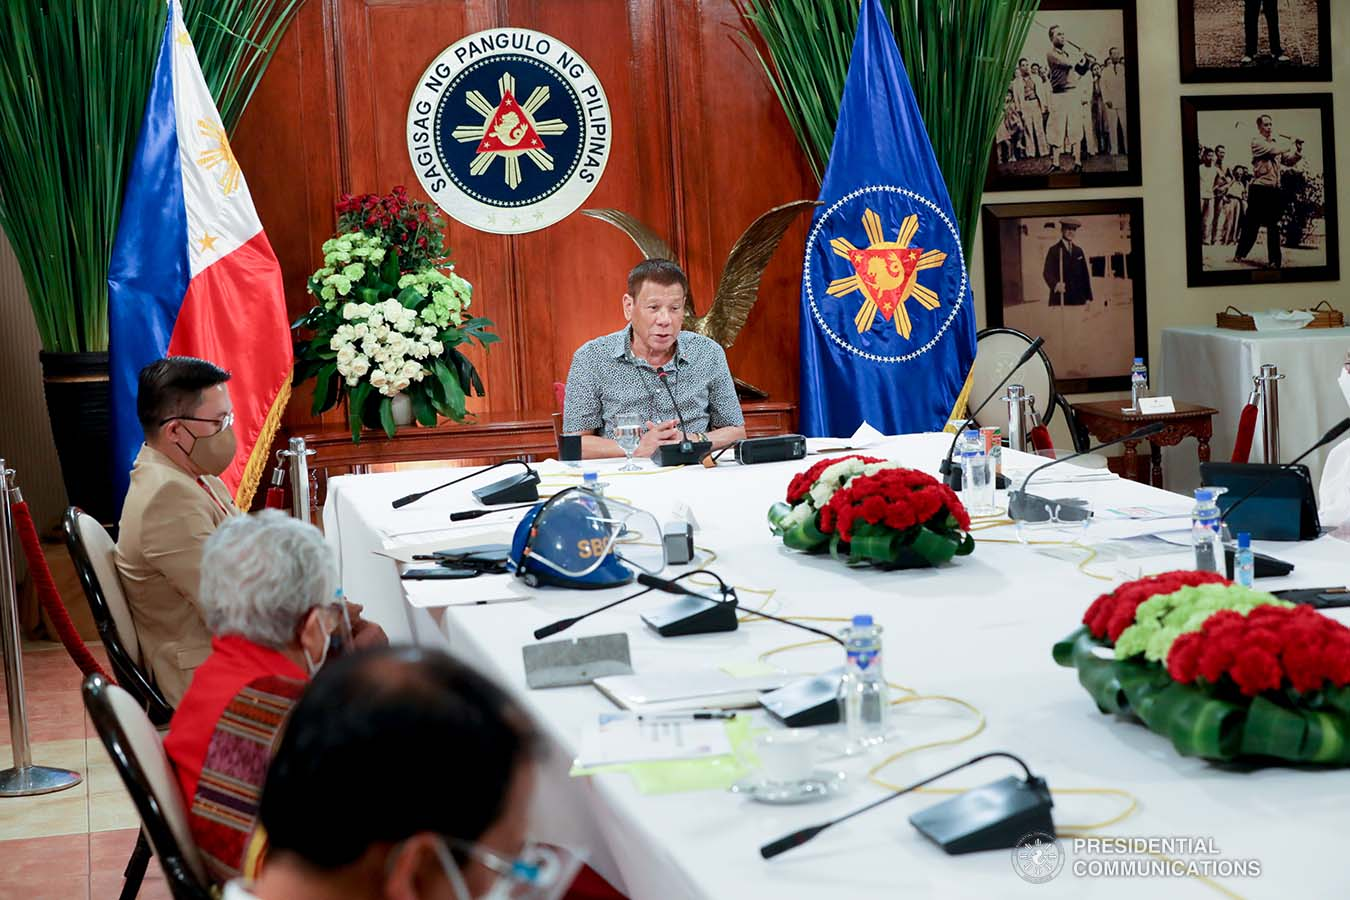 President Rodrigo Roa Duterte talks to the people after holding a meeting with the Inter-Agency Task Force on the Emerging Infectious Diseases (IATF-EID) core members at the Malago Clubhouse in Malacañang on August 31, 2020. TOTO LOZANO/PRESIDENTIAL PHOTO